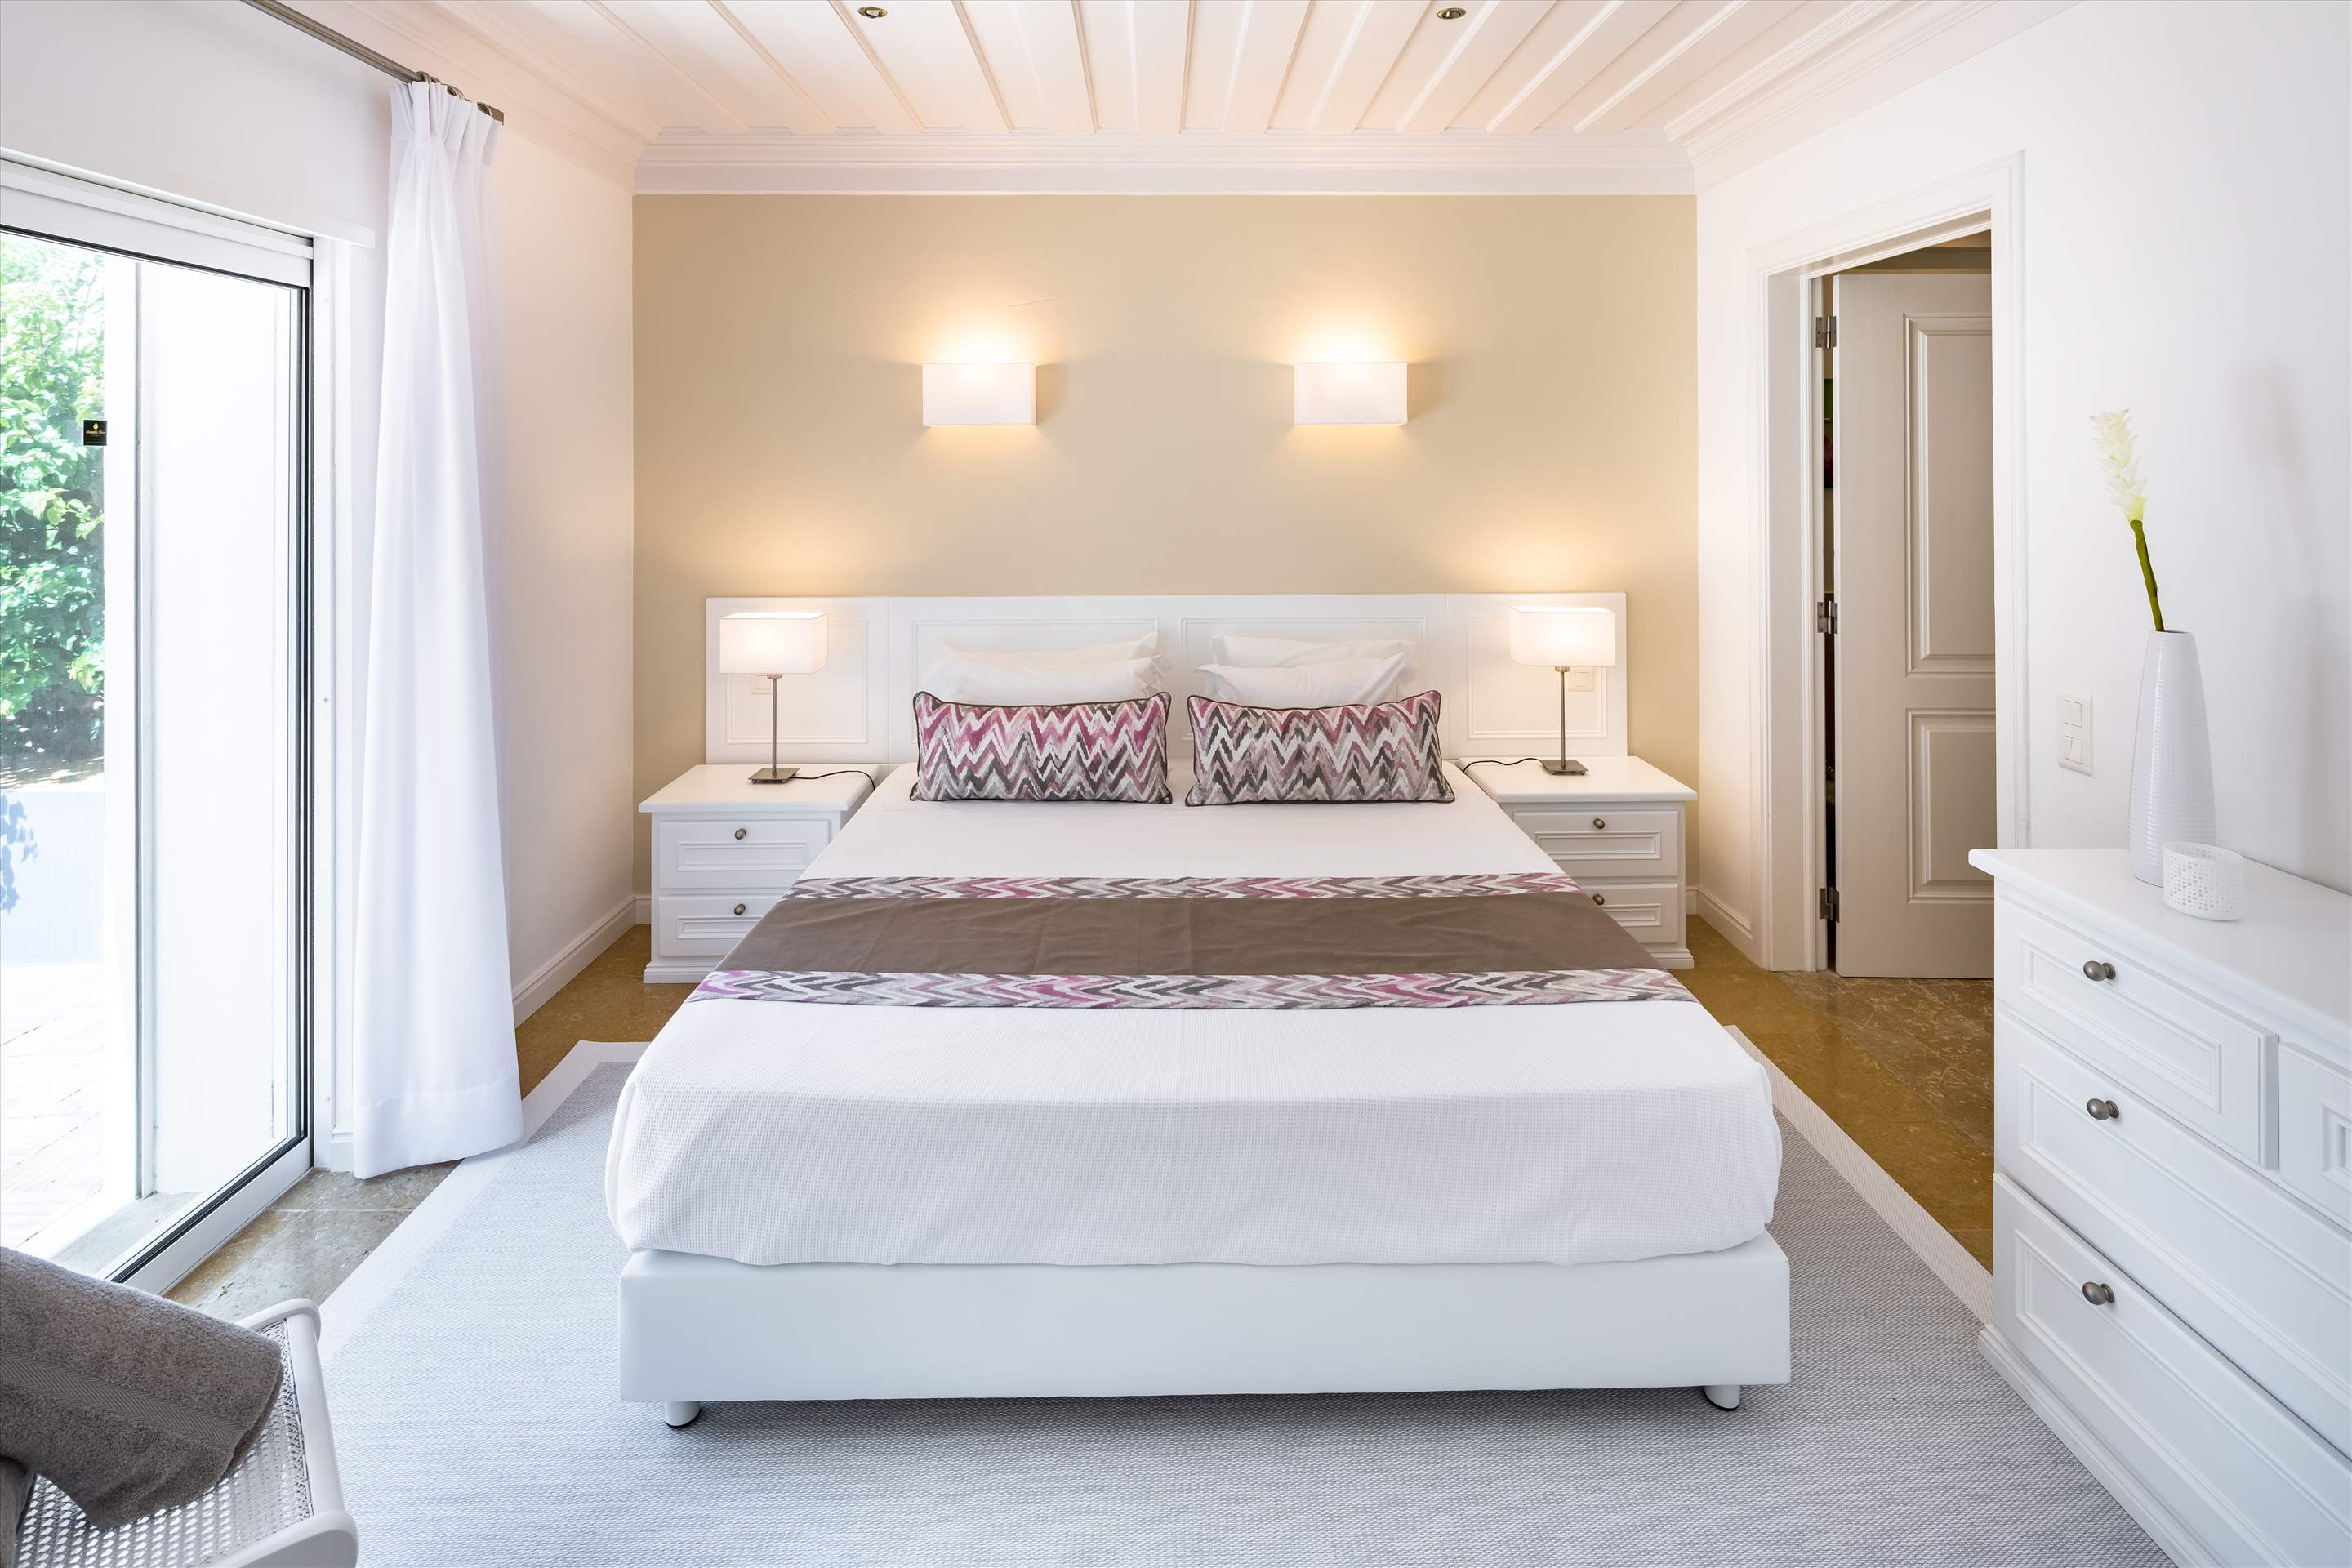 Casa da Montanha, 11-12 persons, 7 bedroom villa in Vilamoura Area, Algarve Photo #21